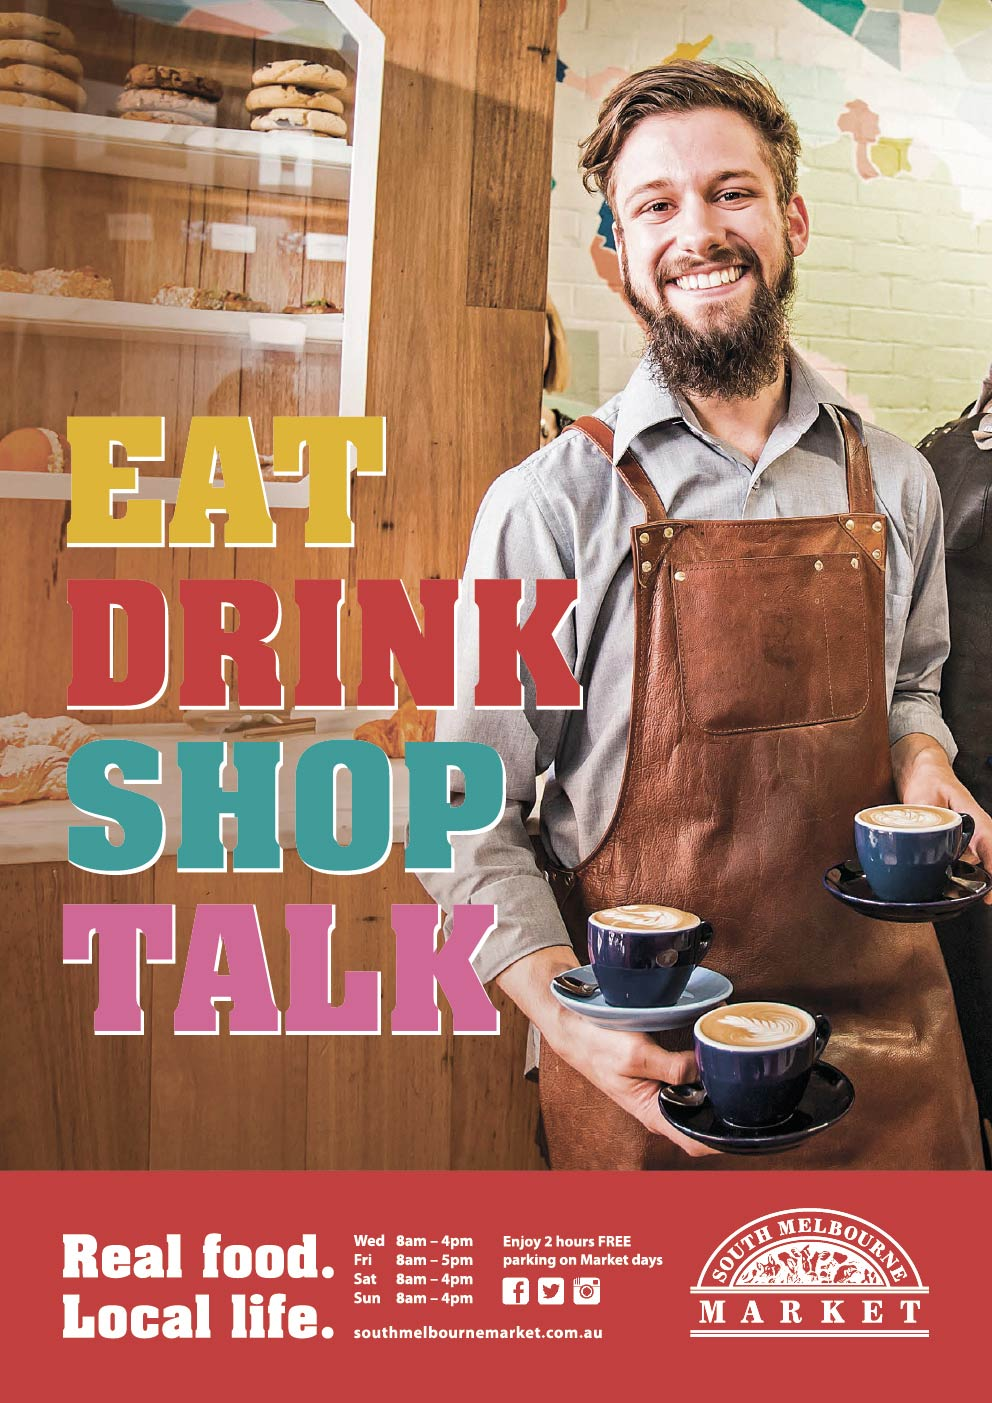 Eat Drink Talk Shop